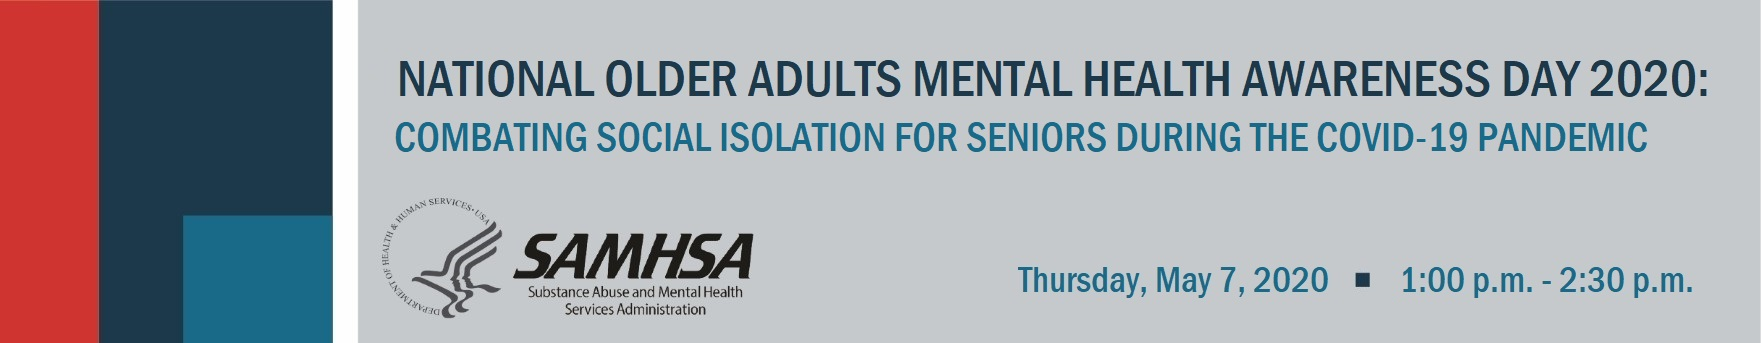 National Older Adults Mental Health Awareness Day 2020: Combating Social Isolation for Seniors during the COVID-19 Pandemic